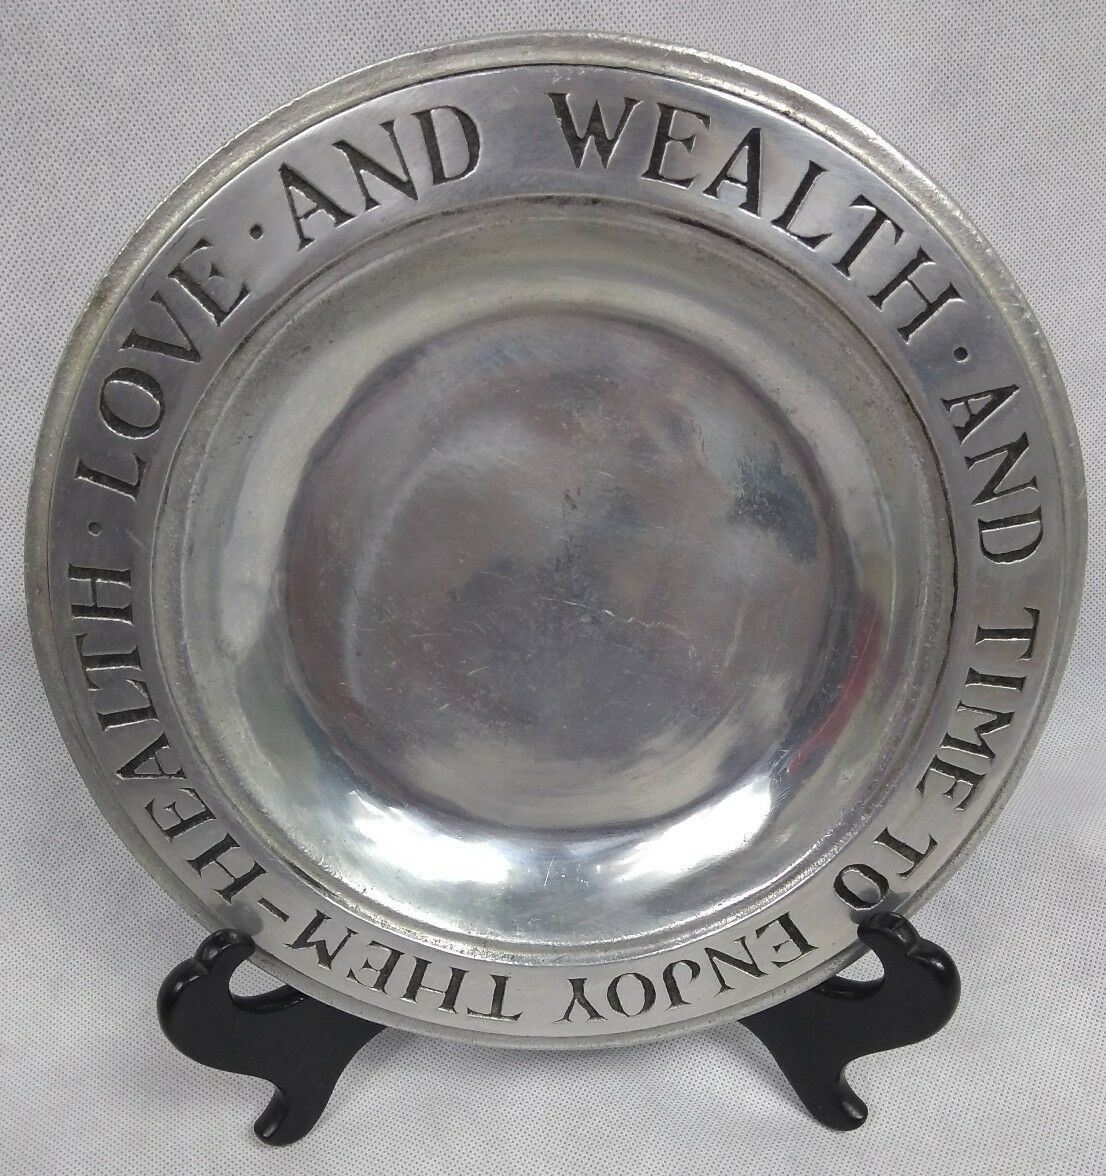 Vintage Wilton Armetale Pewter Plate Health Love And Wealth And Time To Enjoy - $9.90